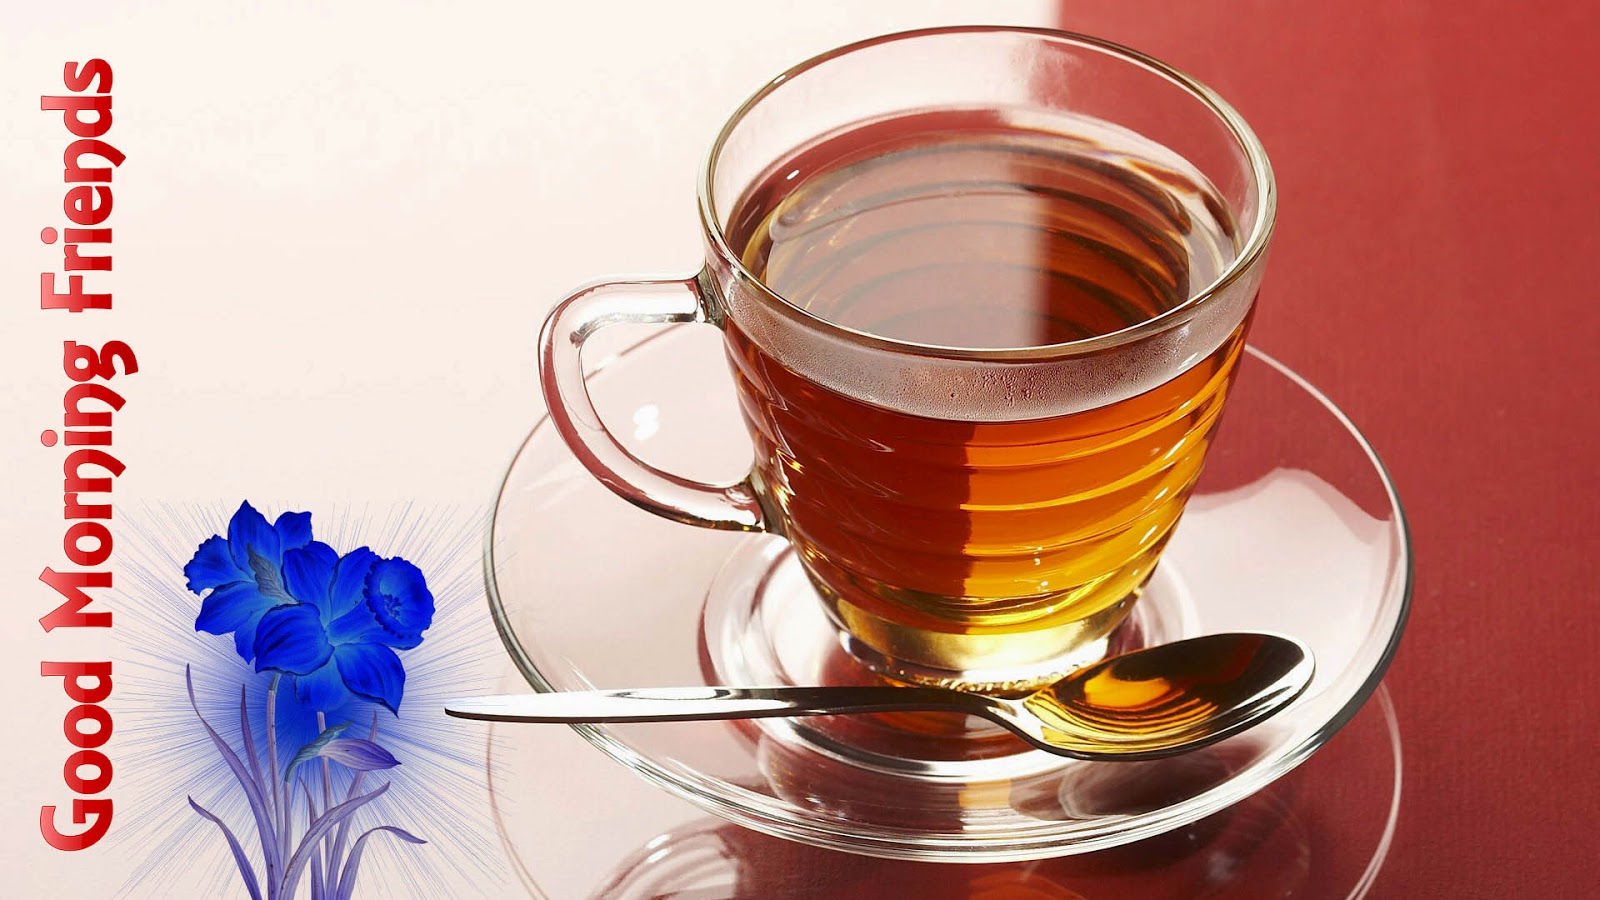 Good morning wish with cup of tea images